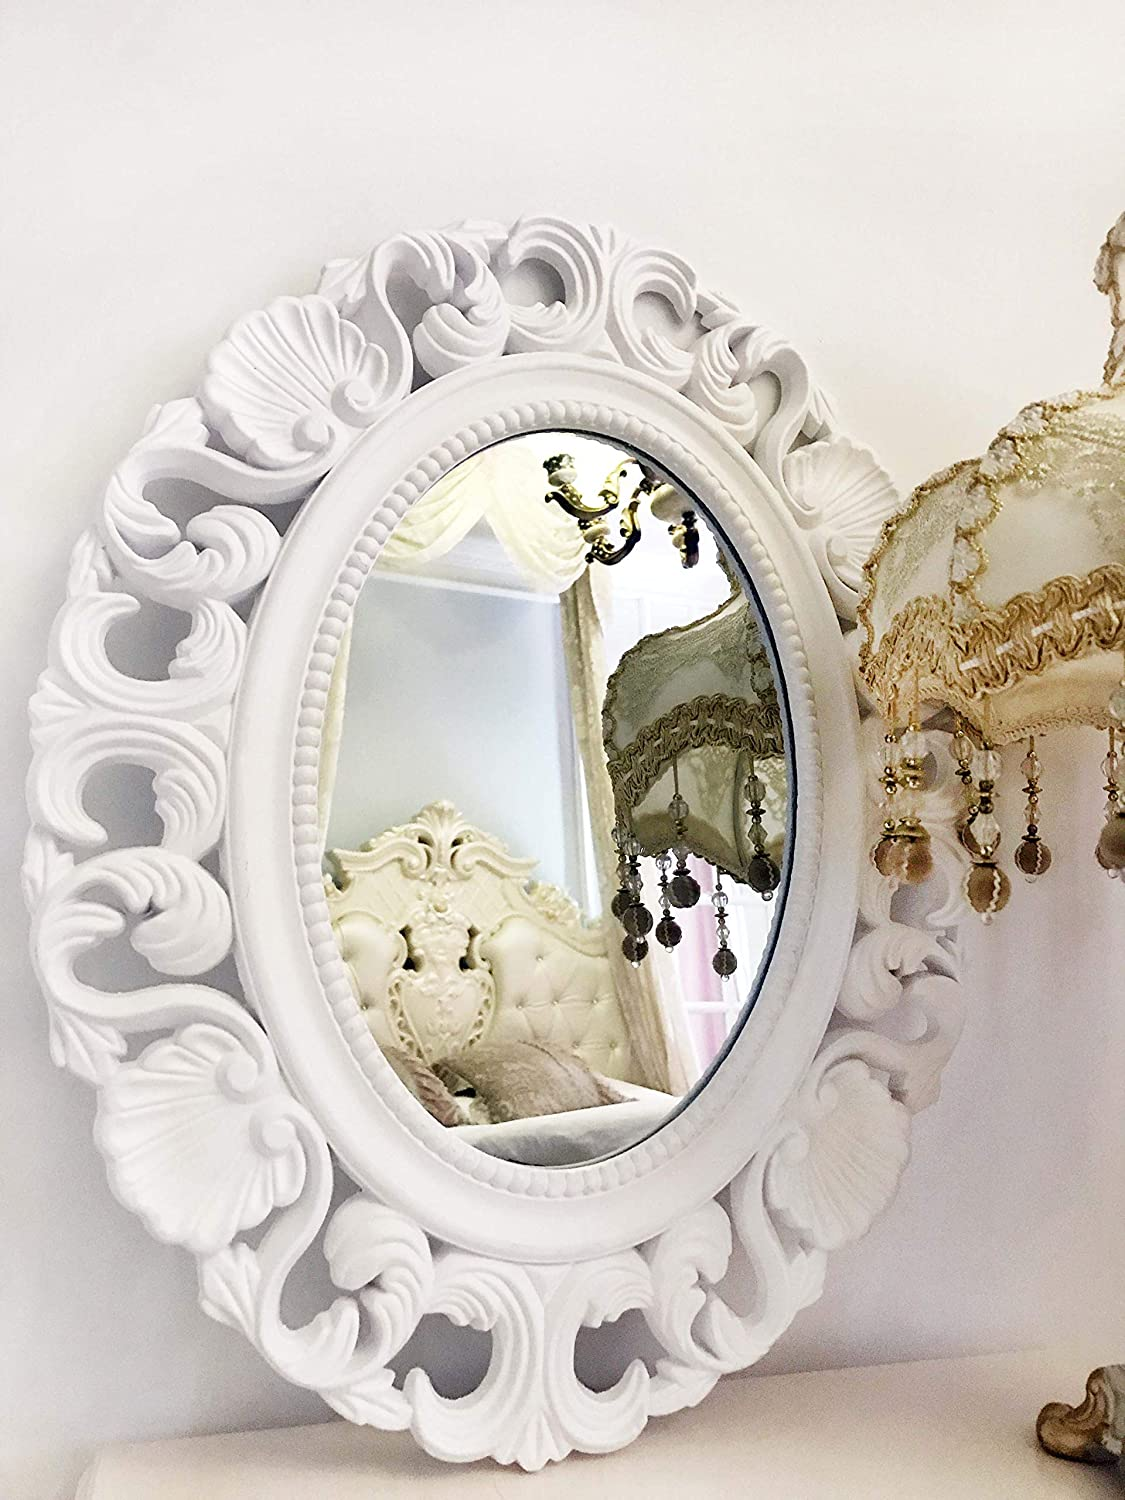 Antique Princess Decor For Bedroom Bathroom Basswood Hunters Oval Vintage Decortative Wall Mirror Living Room Playroom Dressers 21x 17 Dressers 21 X 17 Zhuoqin Shen White Wooden Frame Wall Mounted Mirrors